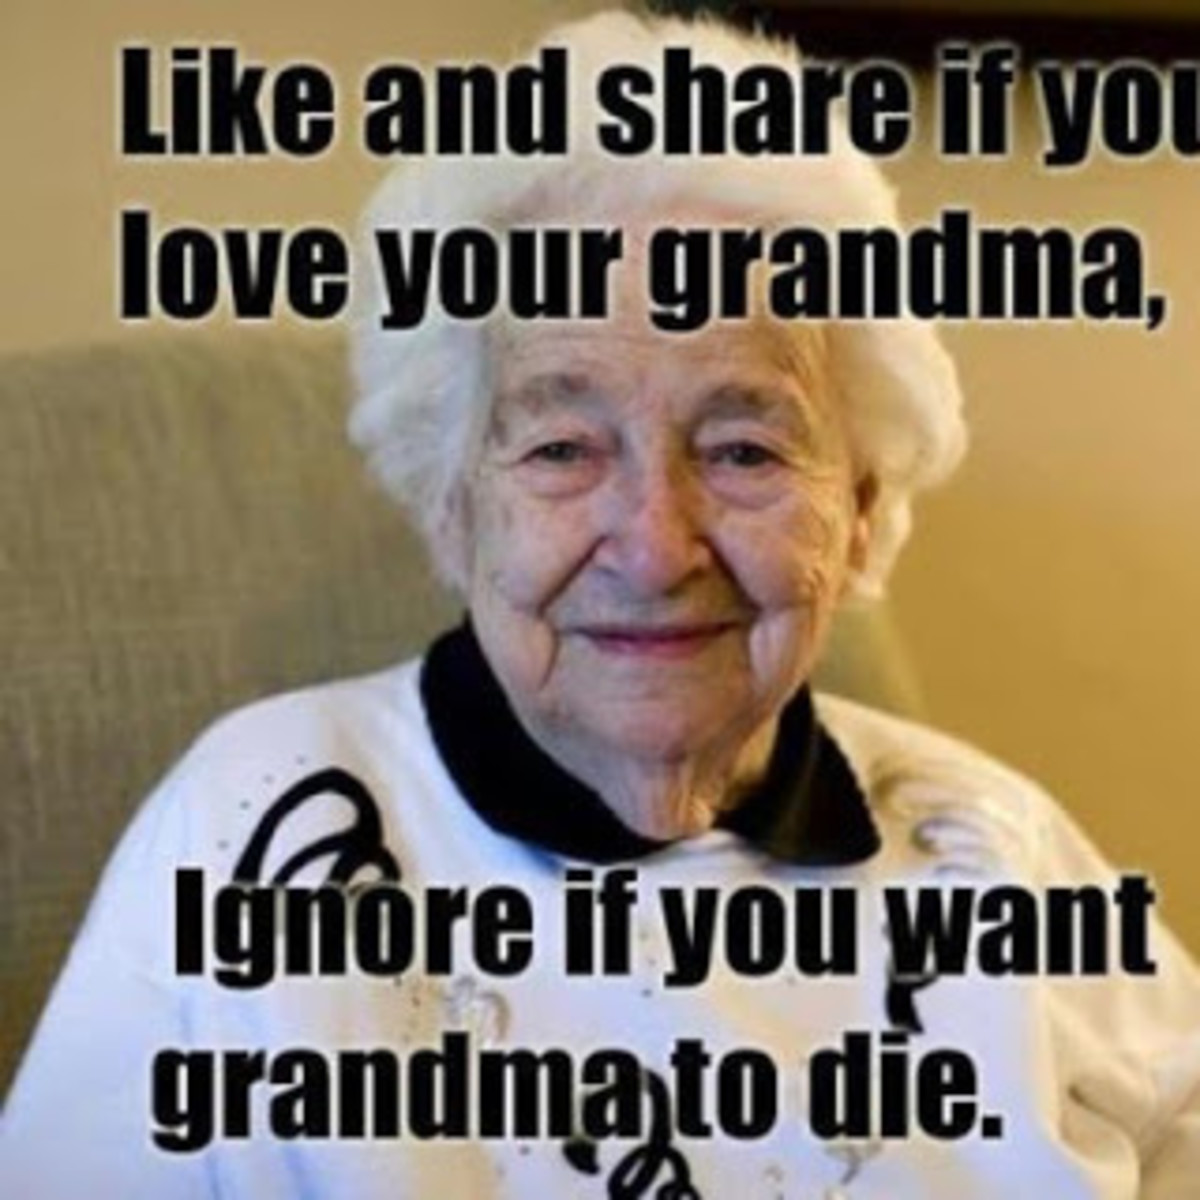 Sorry Granny, I guess I hate you.